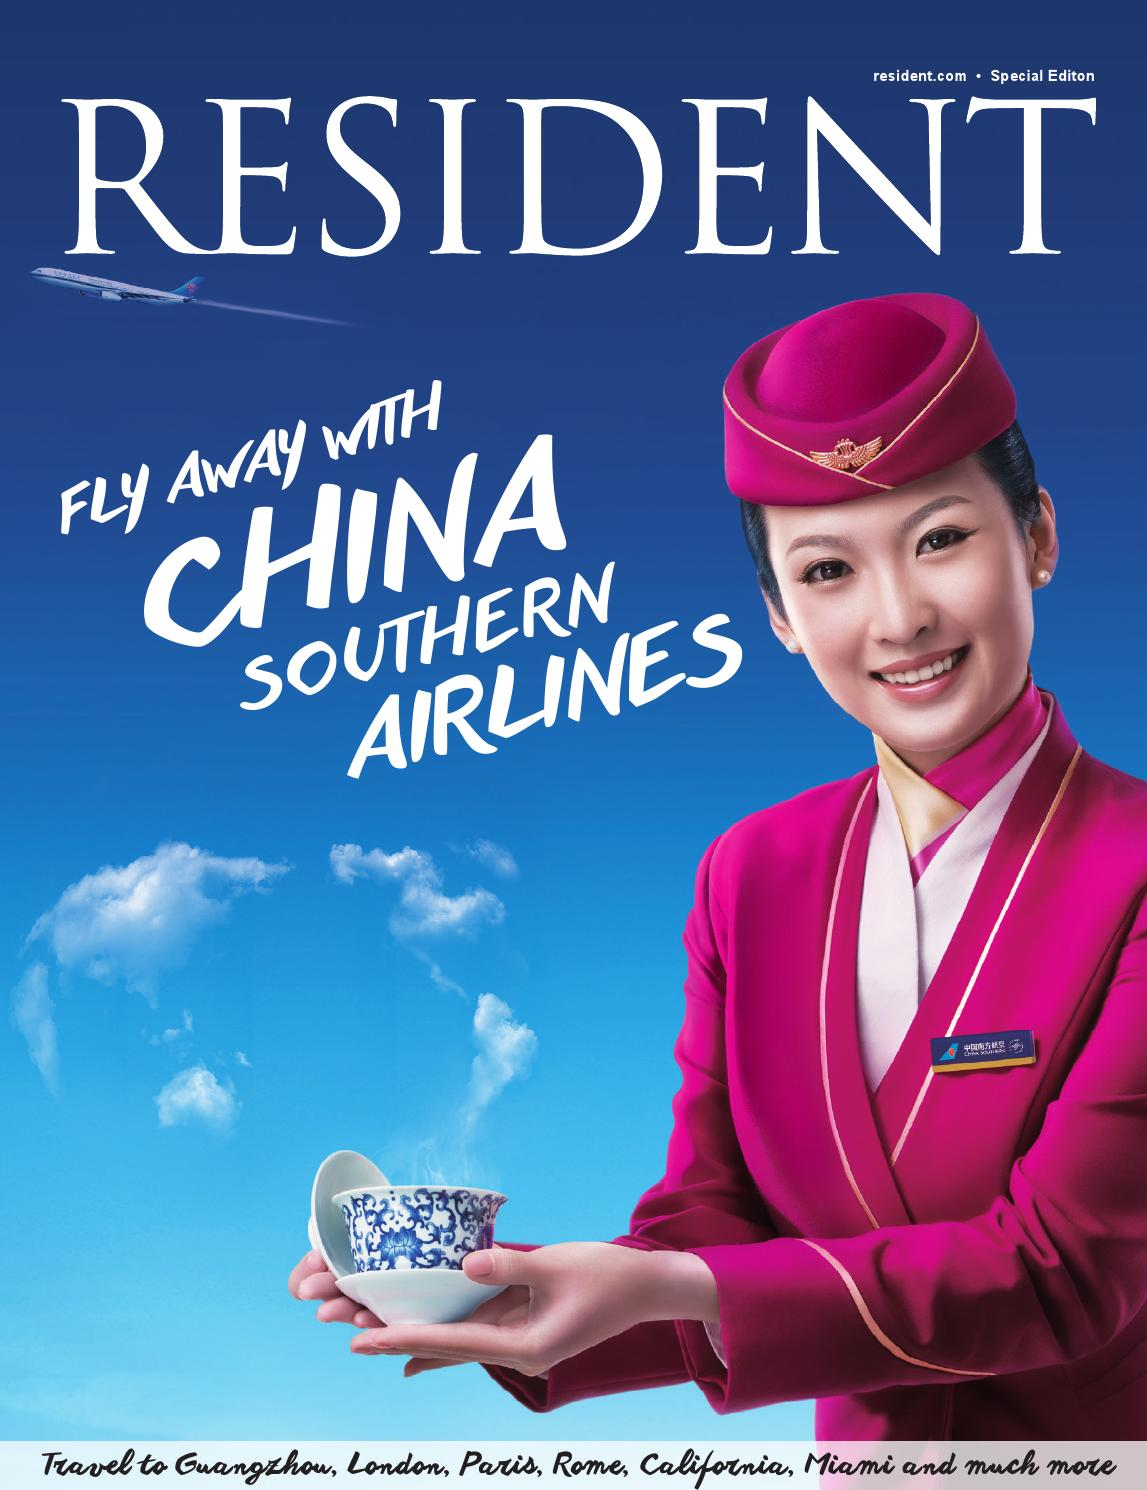 Resident Magazine Special Edition by Resident Magazine - issuu b79902fd658d7